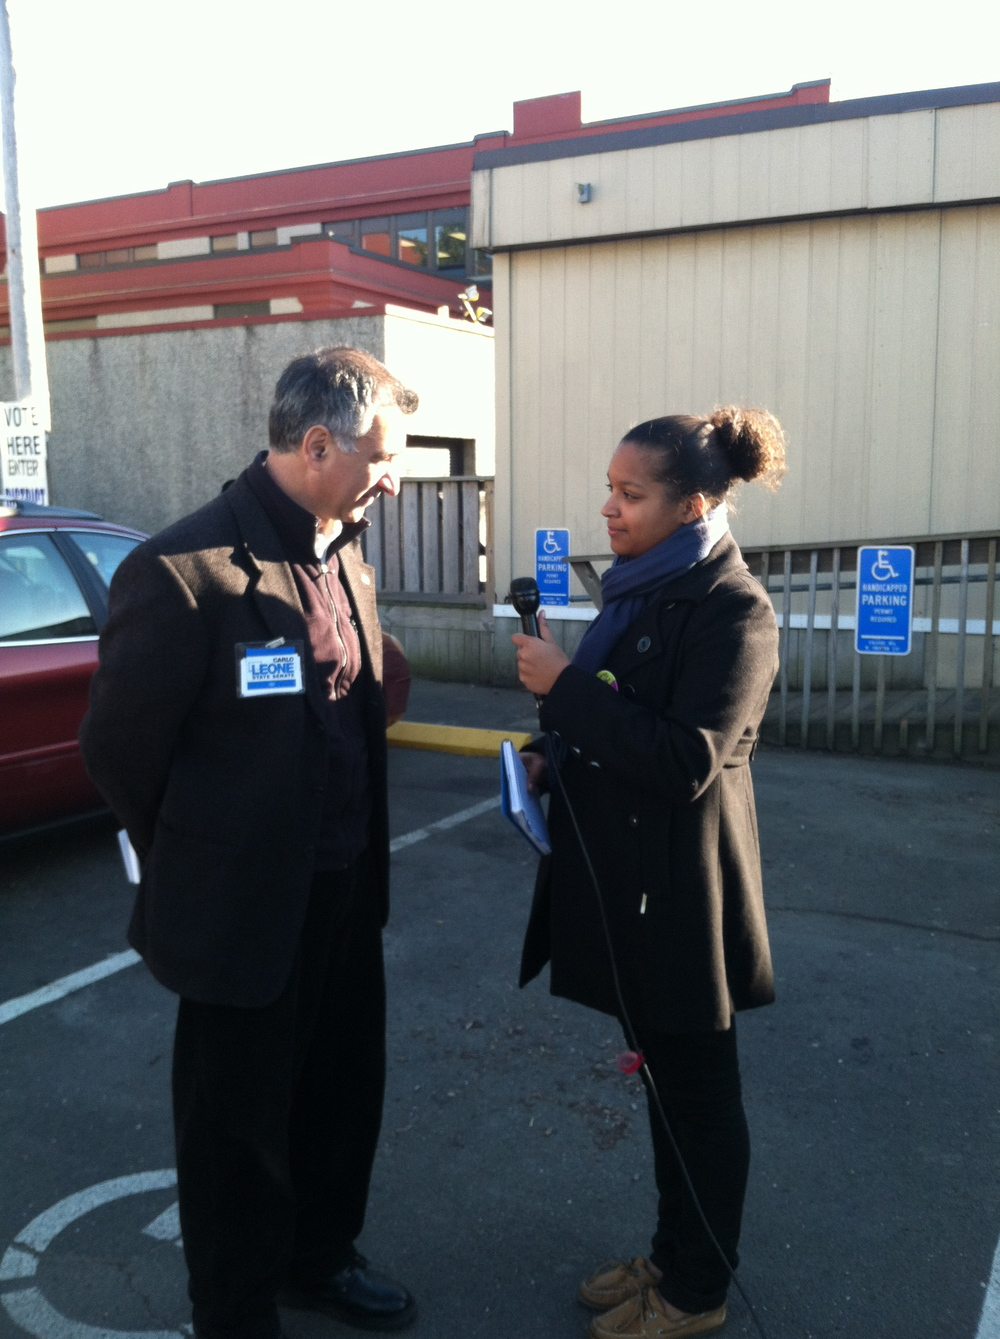 Assistant Majority Leader, State Senator Carlo Leone, pauses for an interview outside the polls (2012).